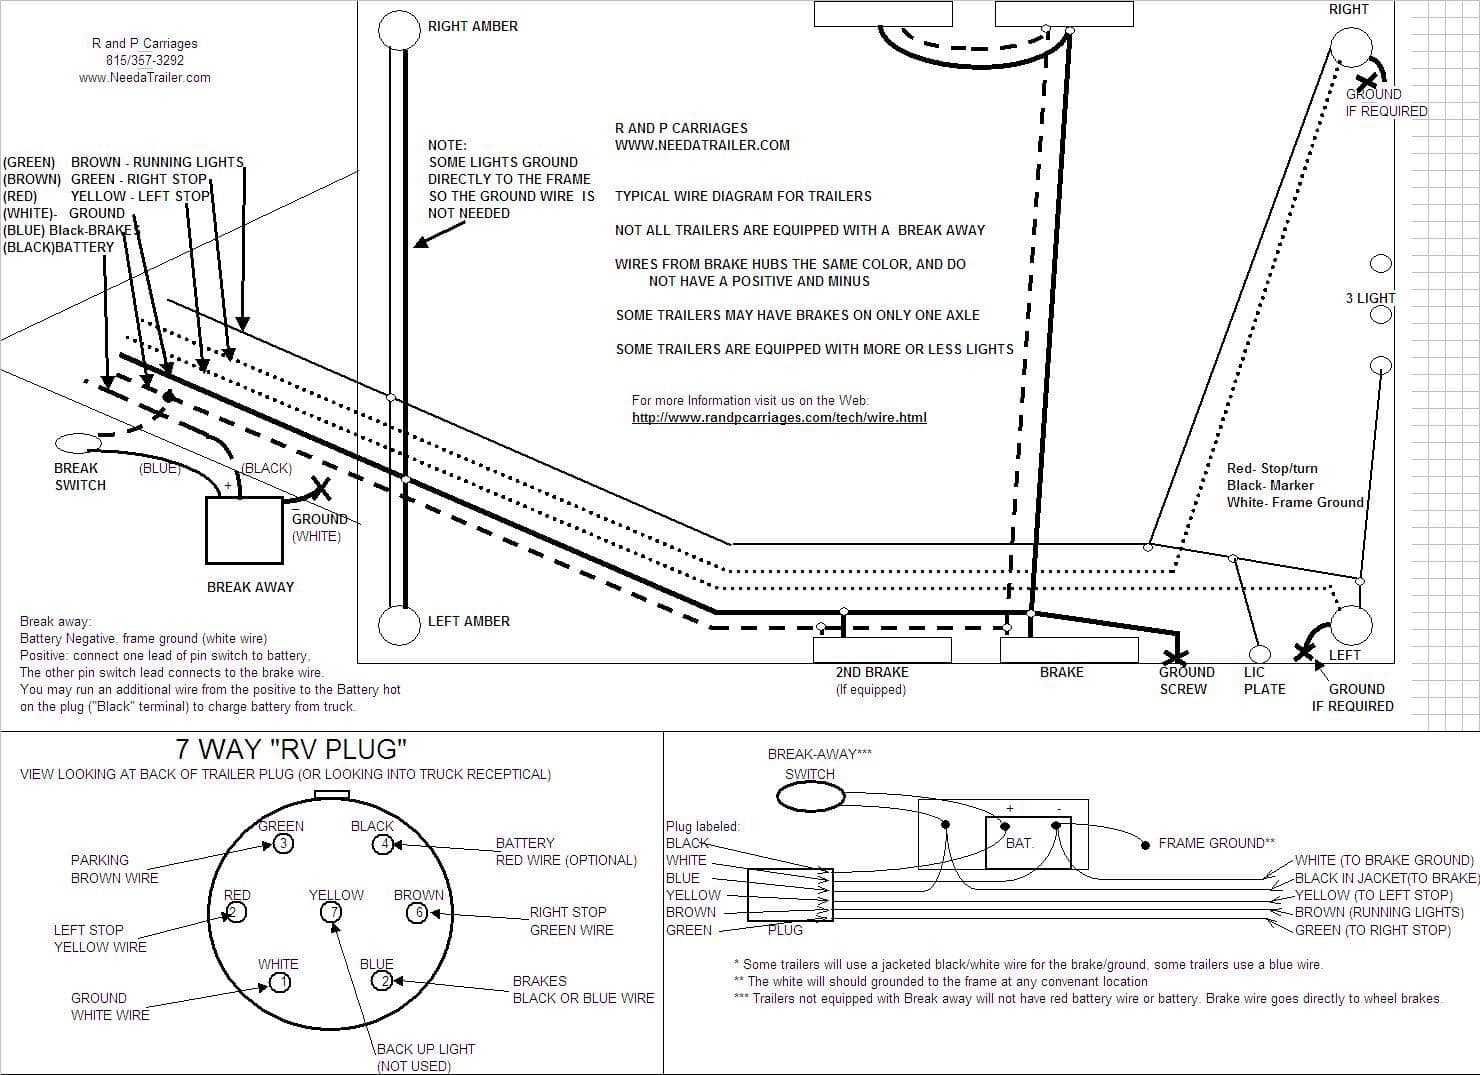 randp diagram 7 way plug information r and p carriages cargo, utility, dump